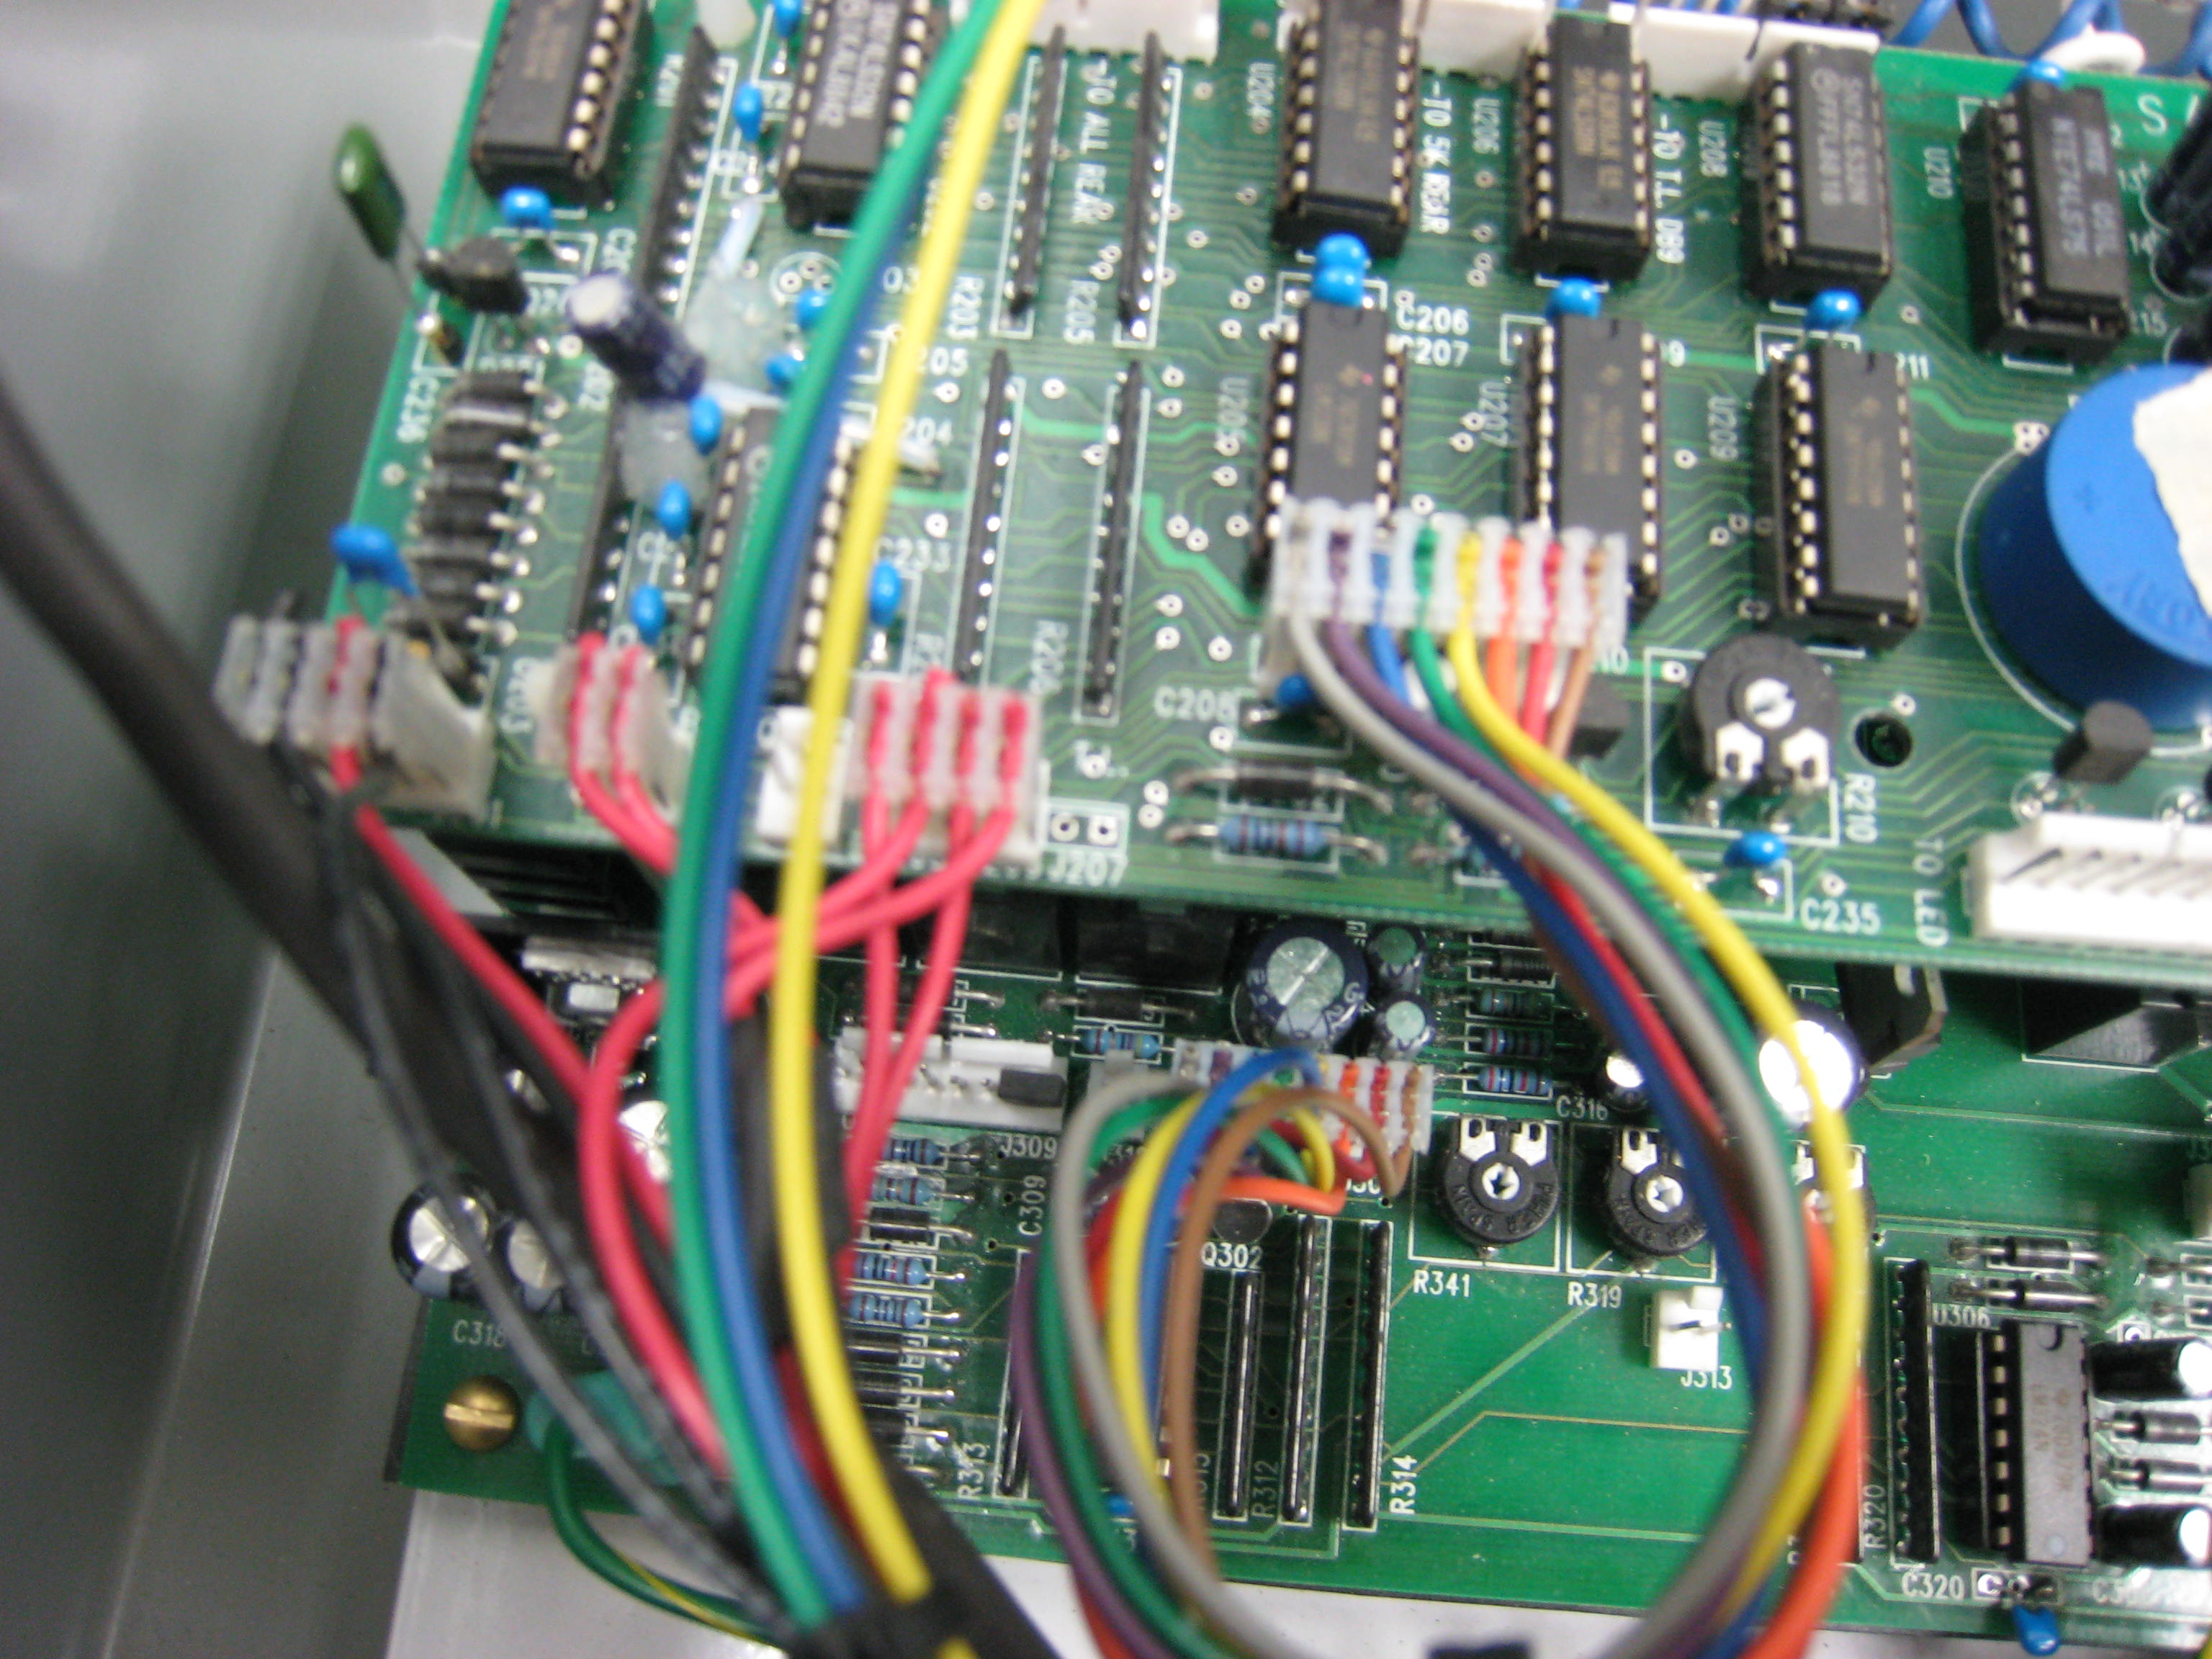 3603454633 - ND ELECTRONICS LIMITED COMPANY | Industry Report